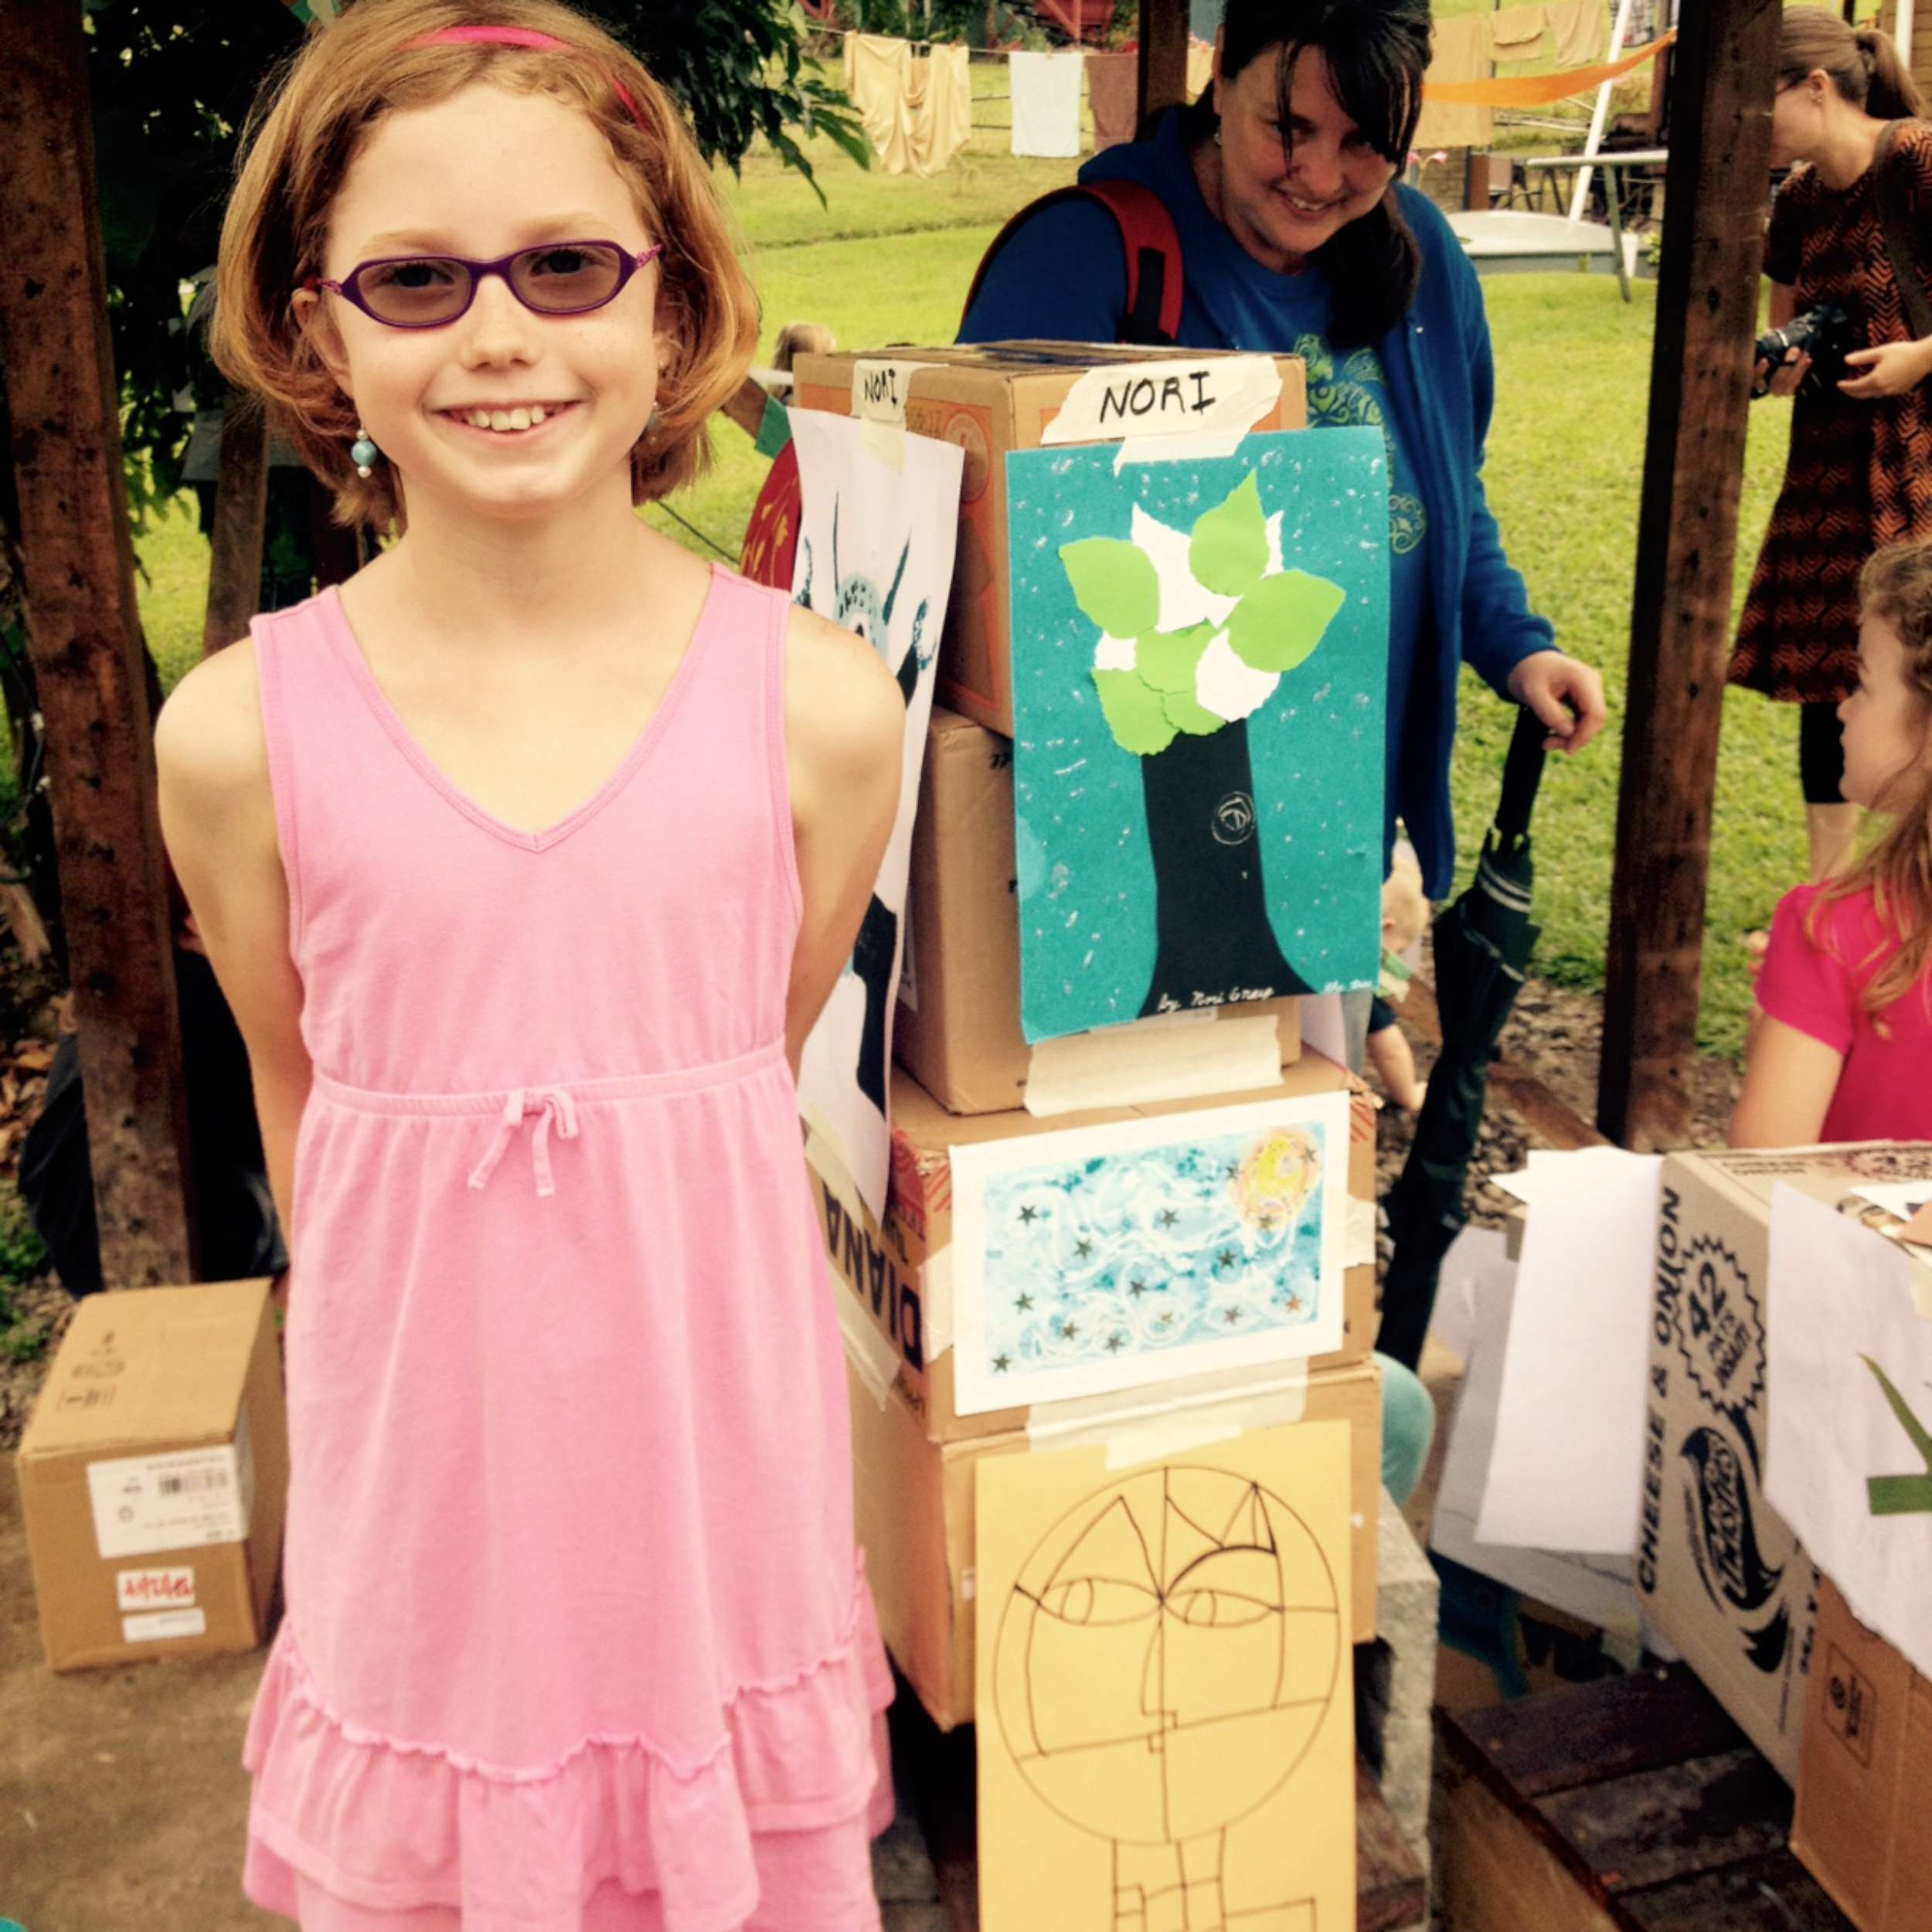 Nori delivers a stellar art show exhibition after her week long art camp with Terry Lofgren.